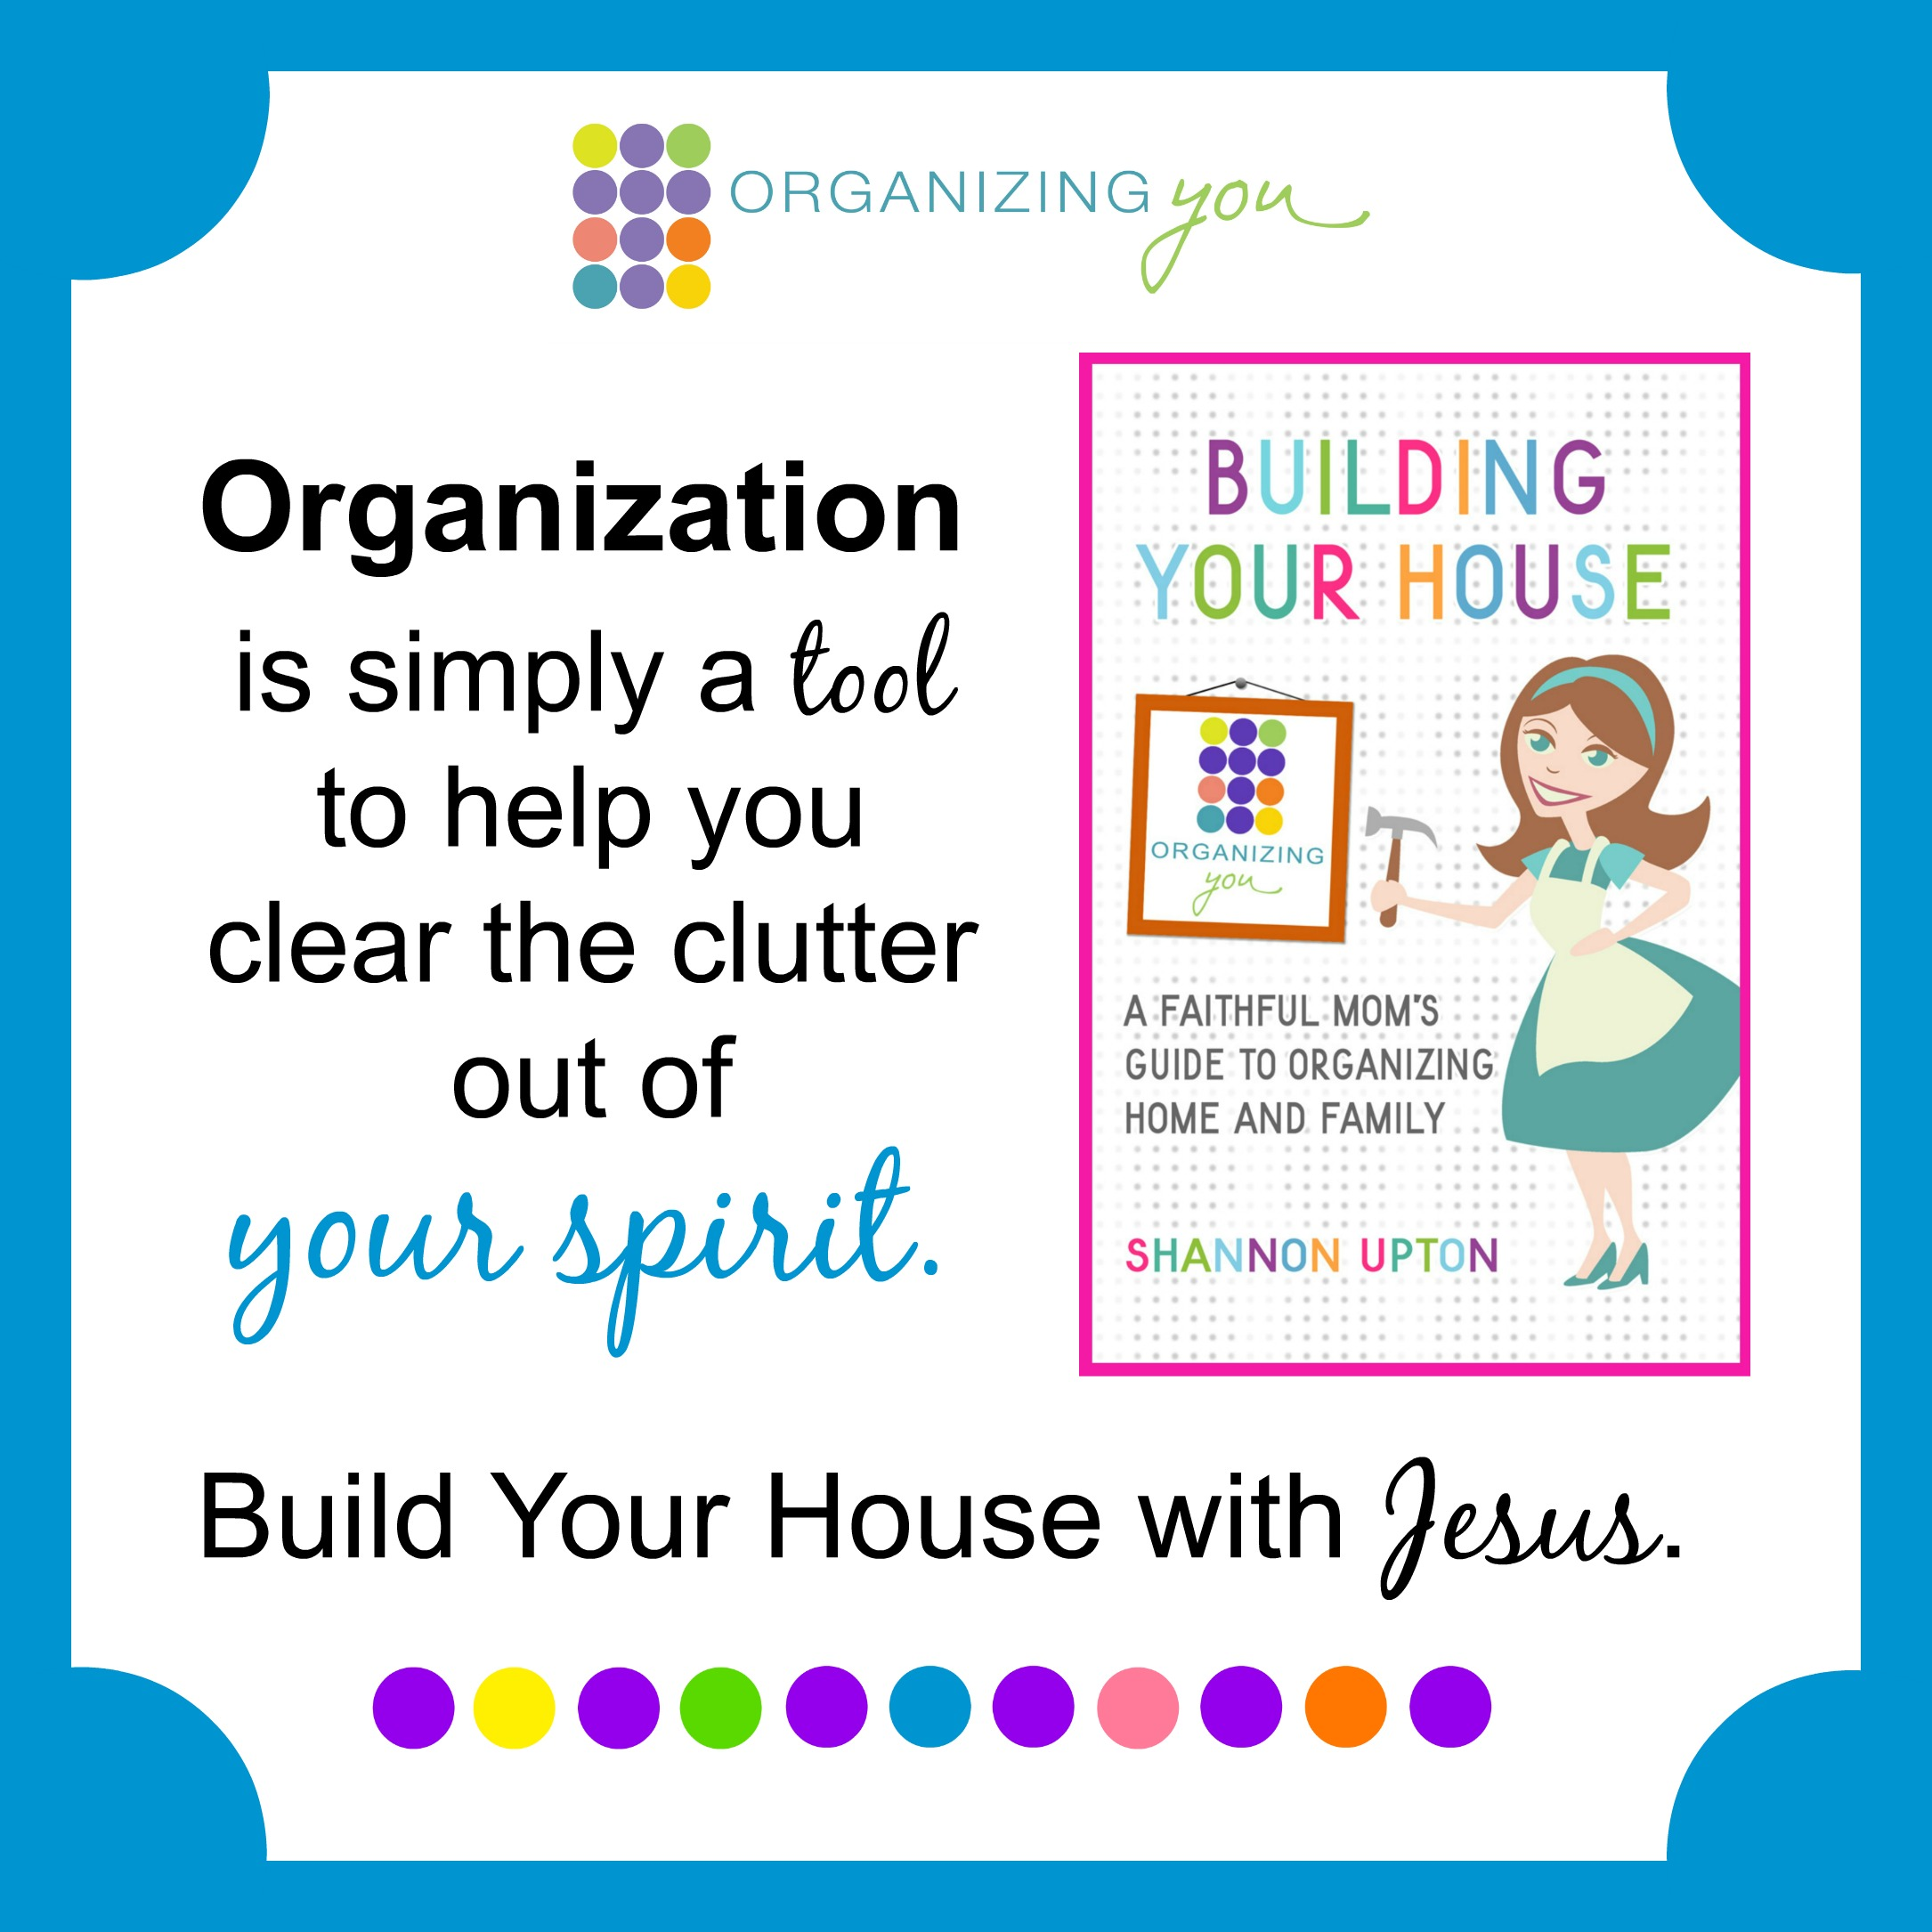 Building-Your-House-ad-2